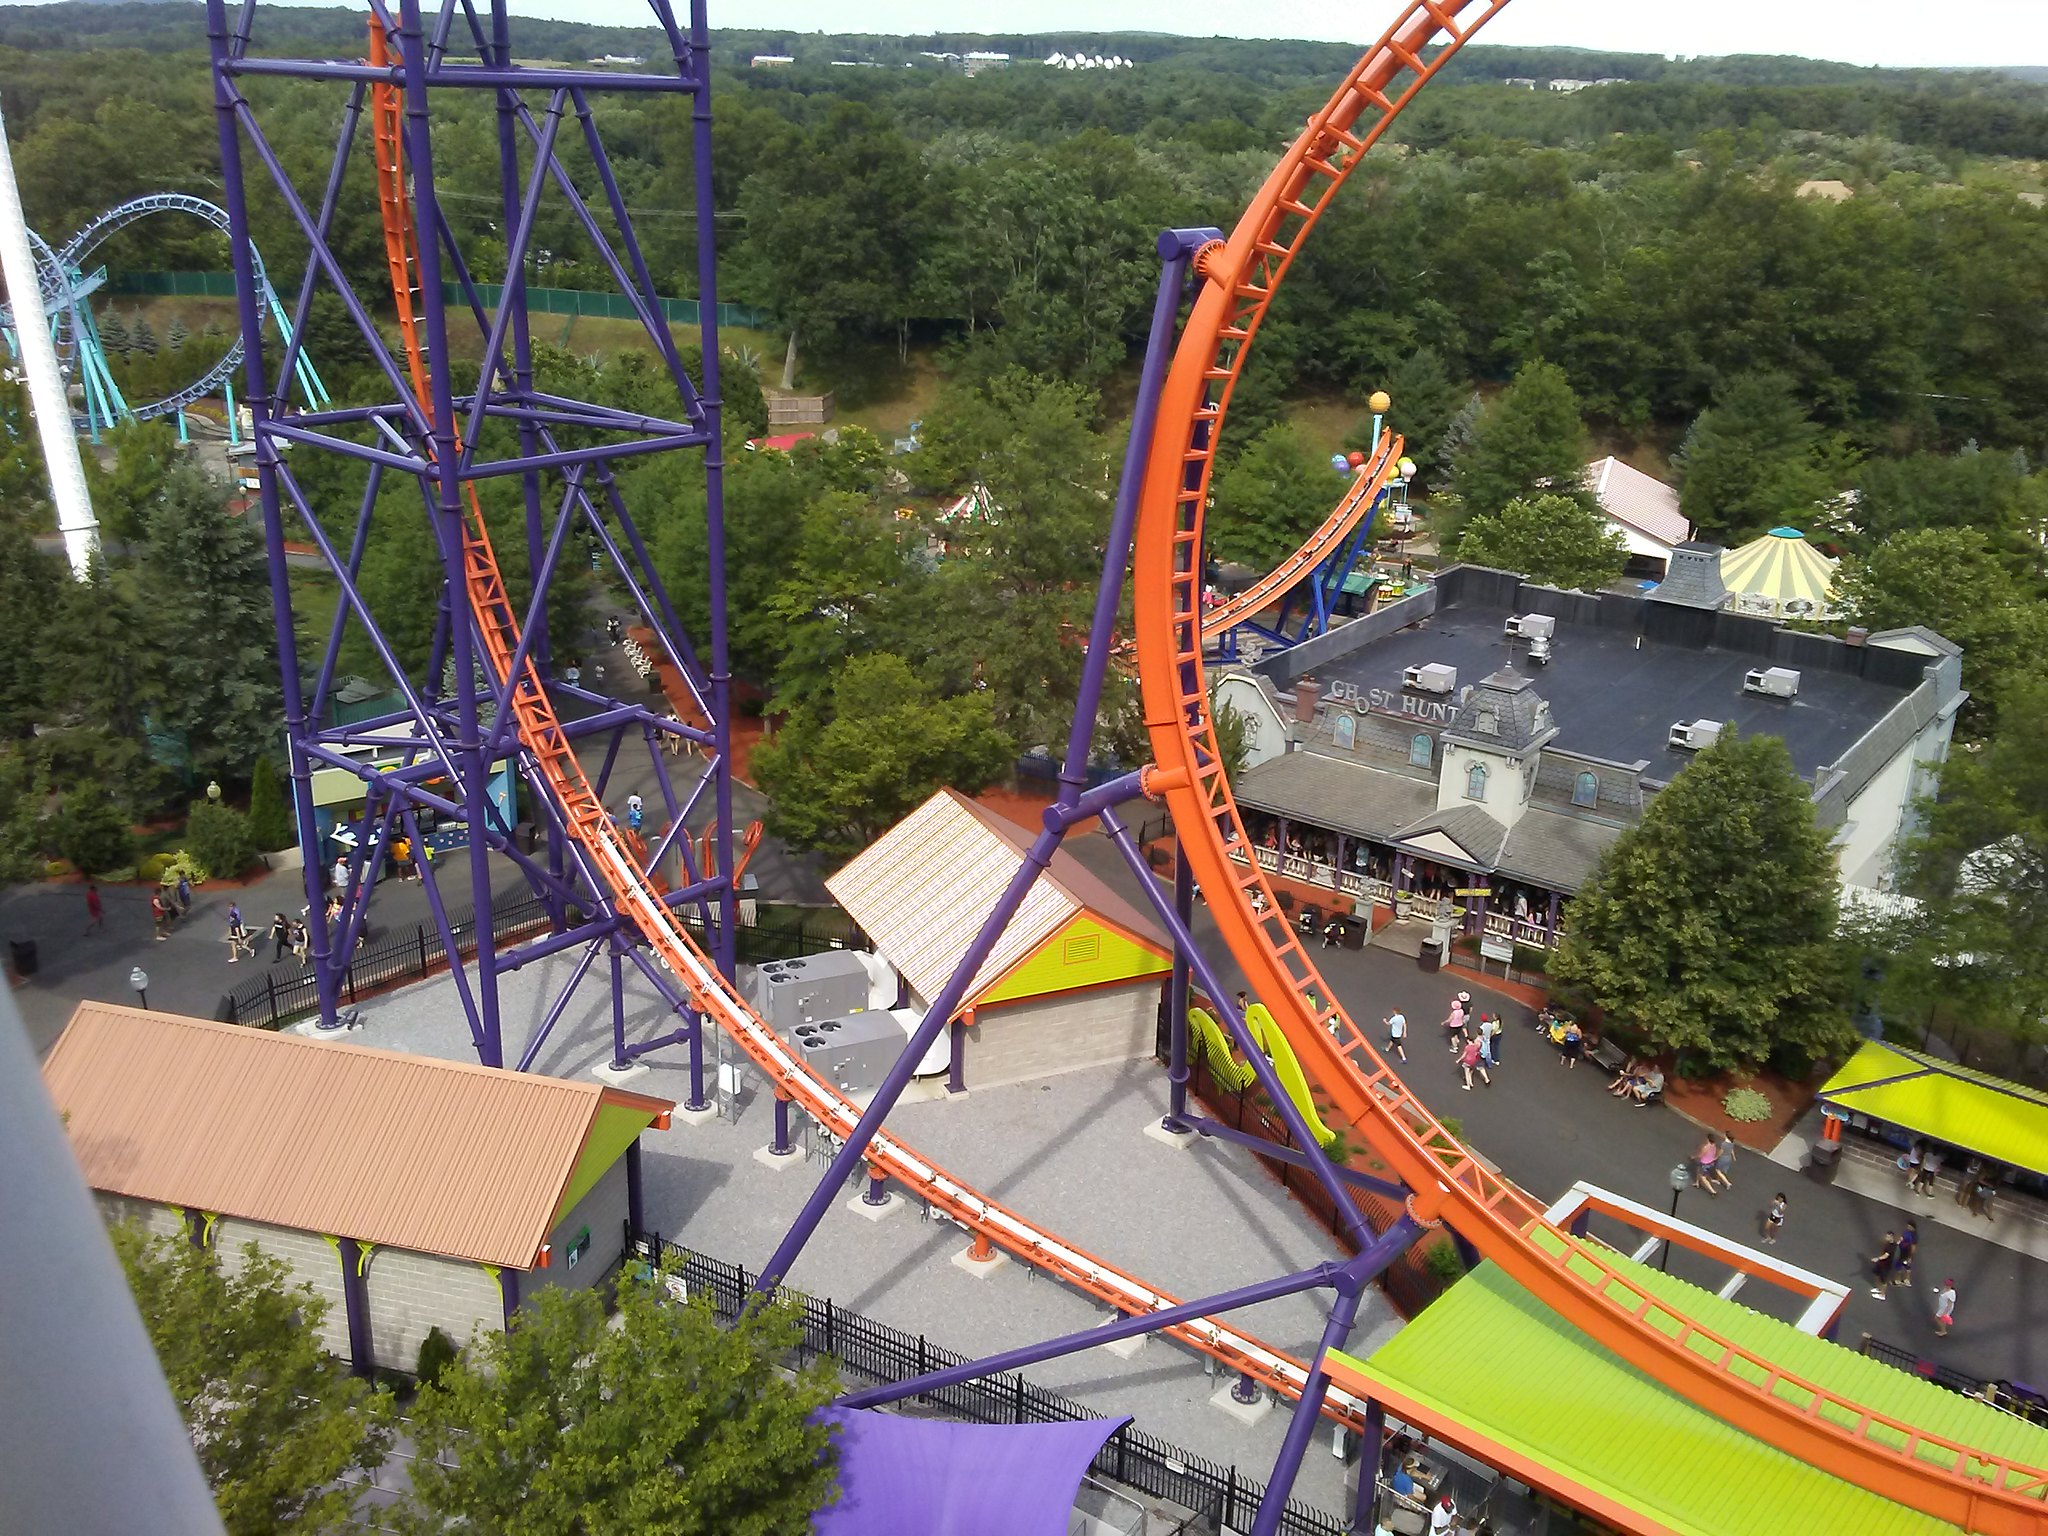 Top Place to Visit in Connecticut-Lake Compounce: Family Theme Park